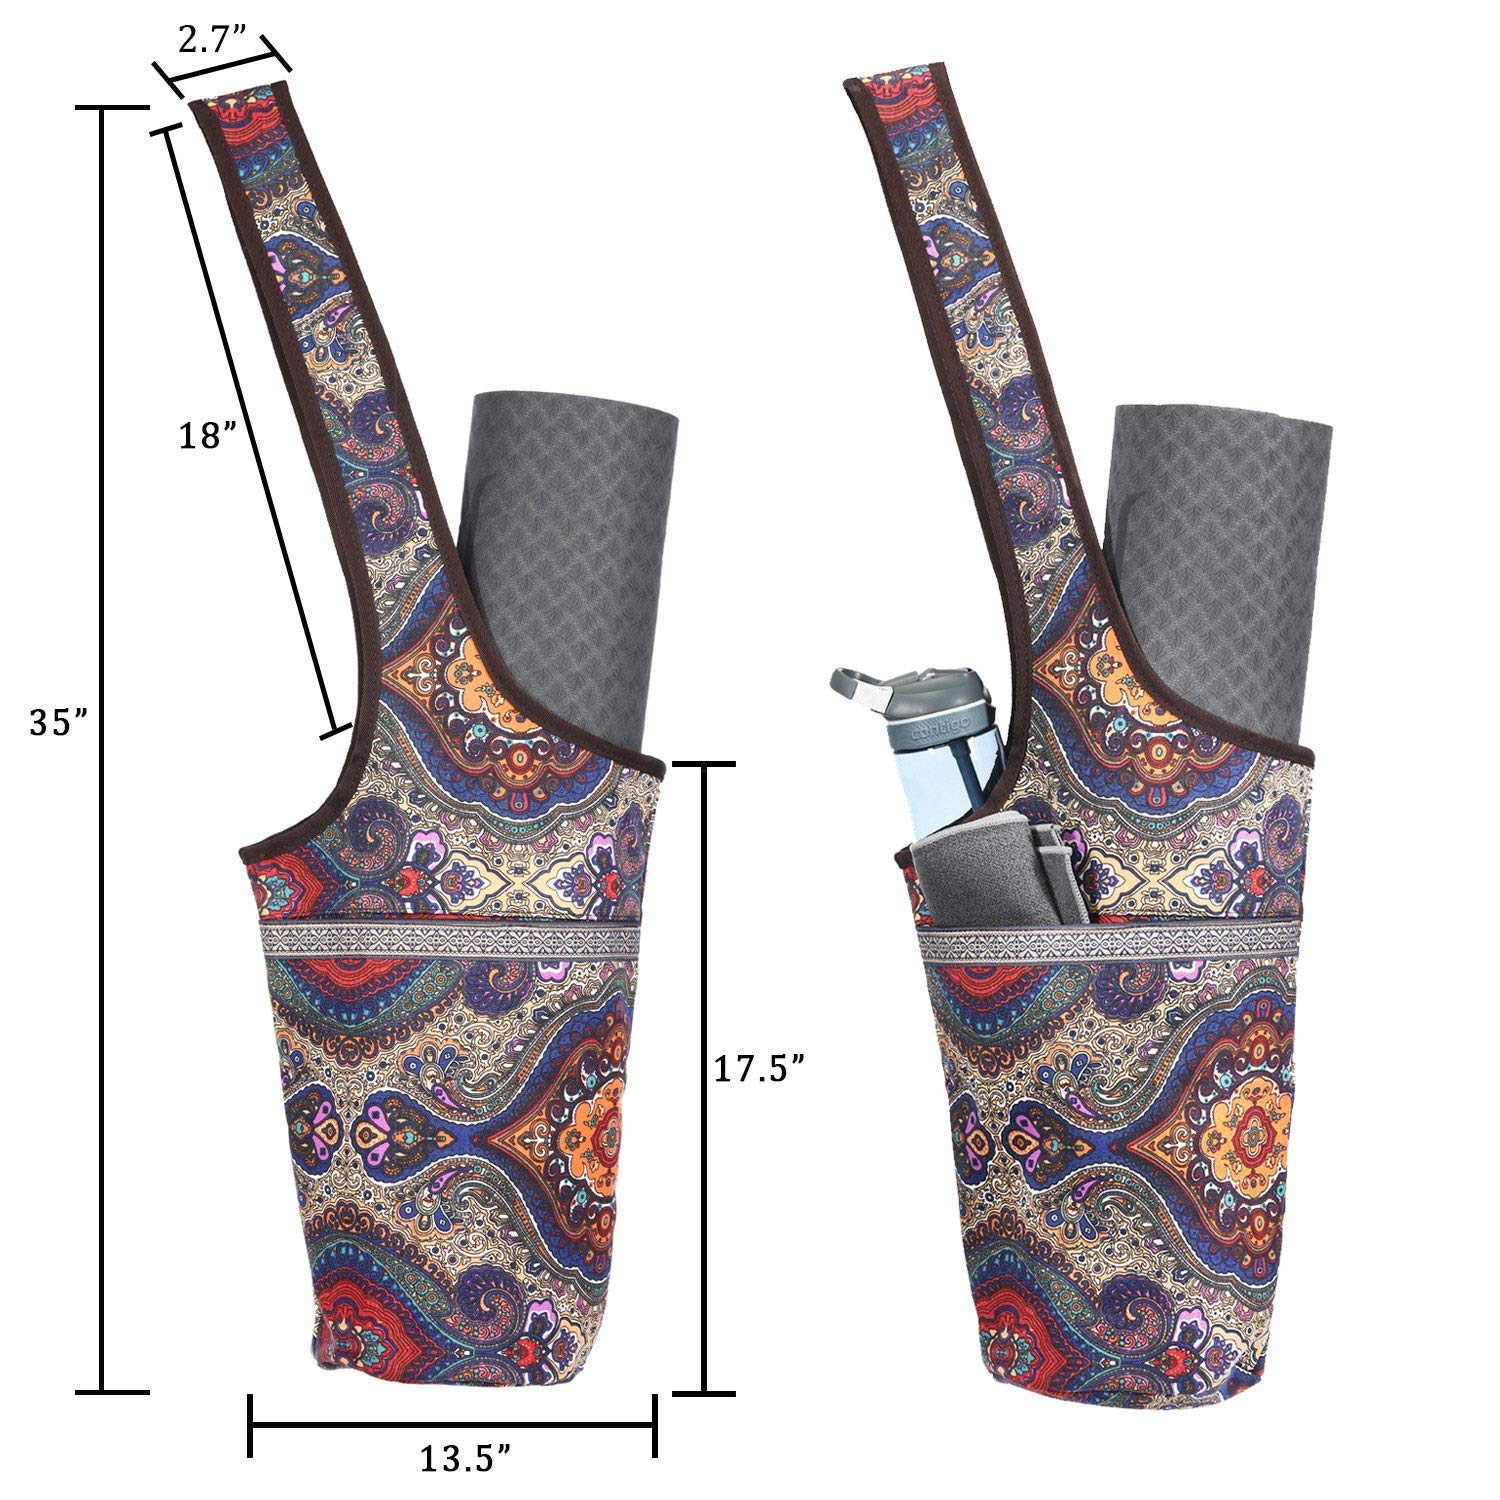 Hothuimin Yoga Mat Bag,Yoga Mat Tote Sling Carrier with Large Size Pocket and Zipper Pocket Fit Most Size Mats